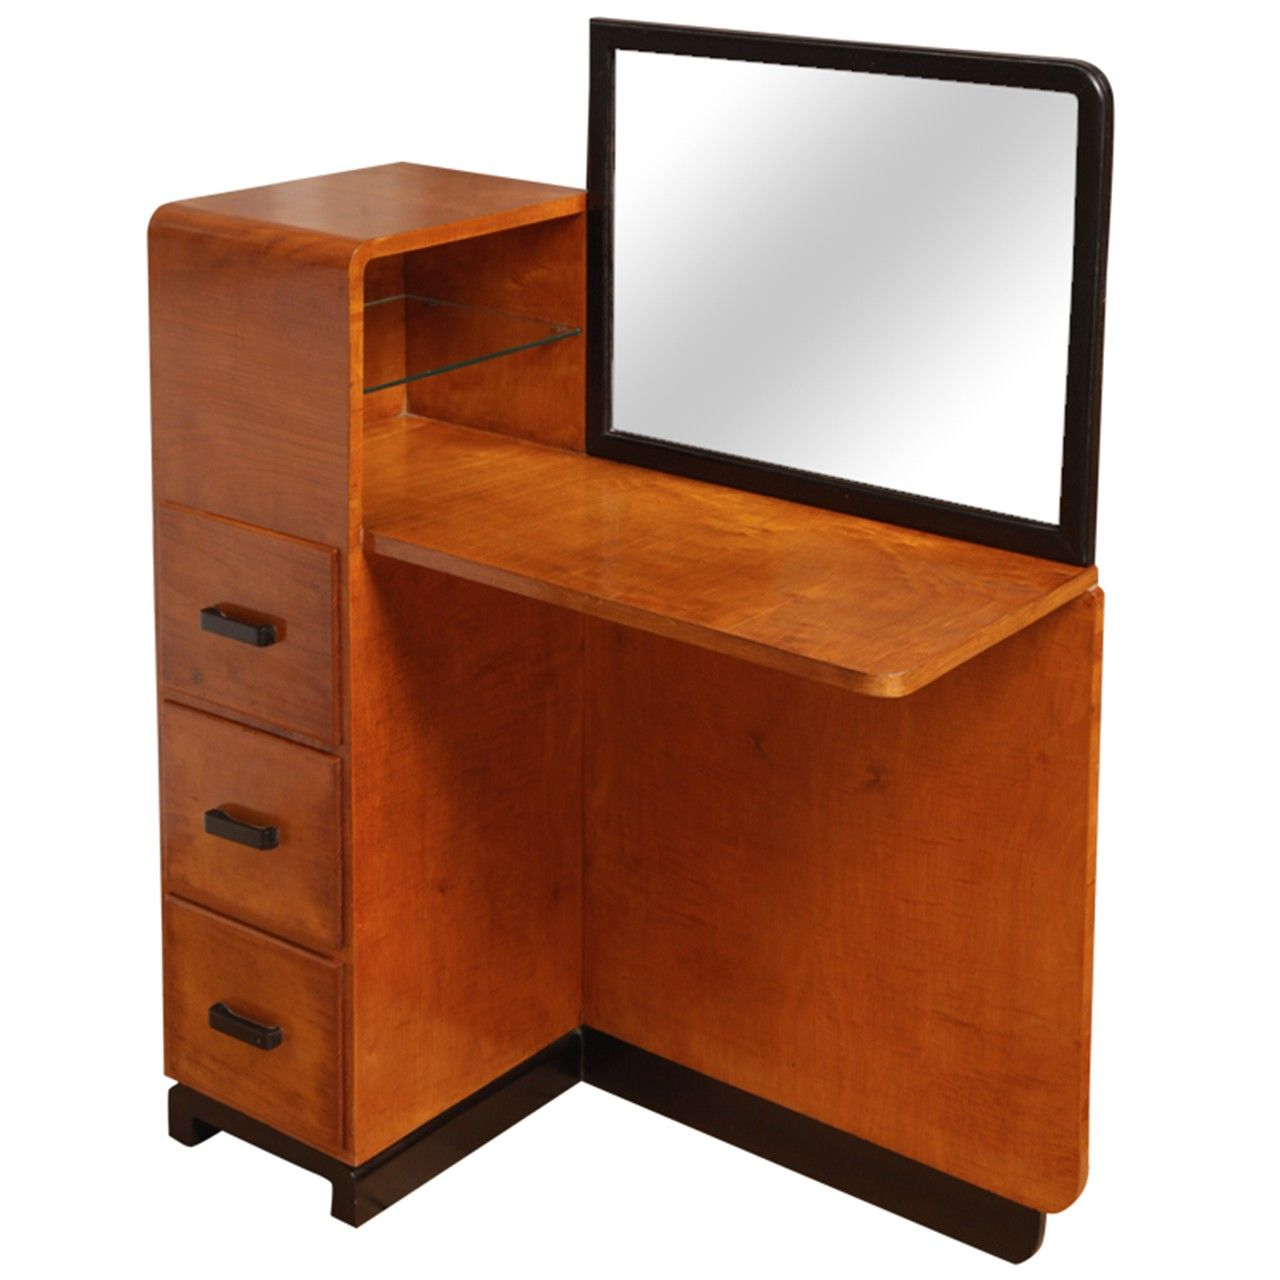 Huib Hoste Modernist Entrance Hall Cabinet | From a unique collection of antique and modern commodes and chests of drawers at http://www.1stdibs.com/furniture/storage-case-pieces/commodes-chests-of-drawers/